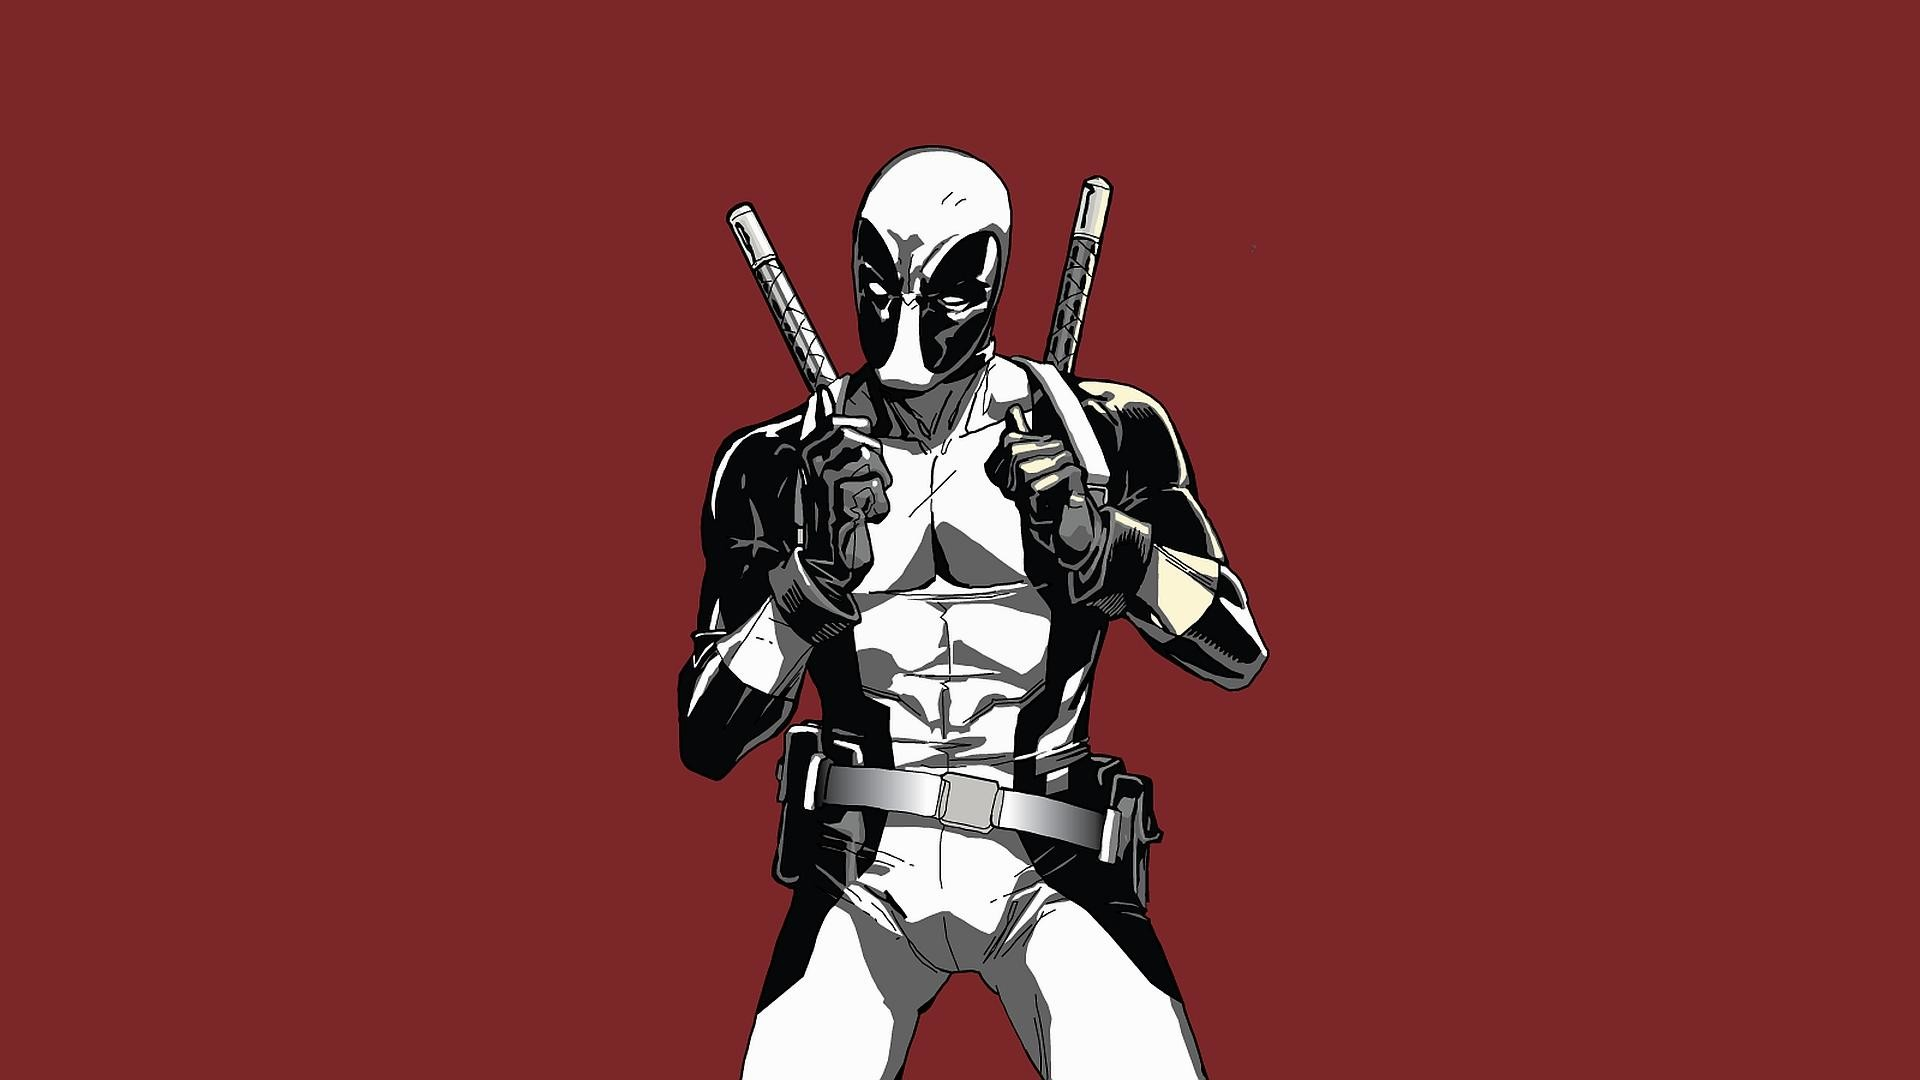 Deadpool-HD-Wallpaper-Desktop-Backgrounds